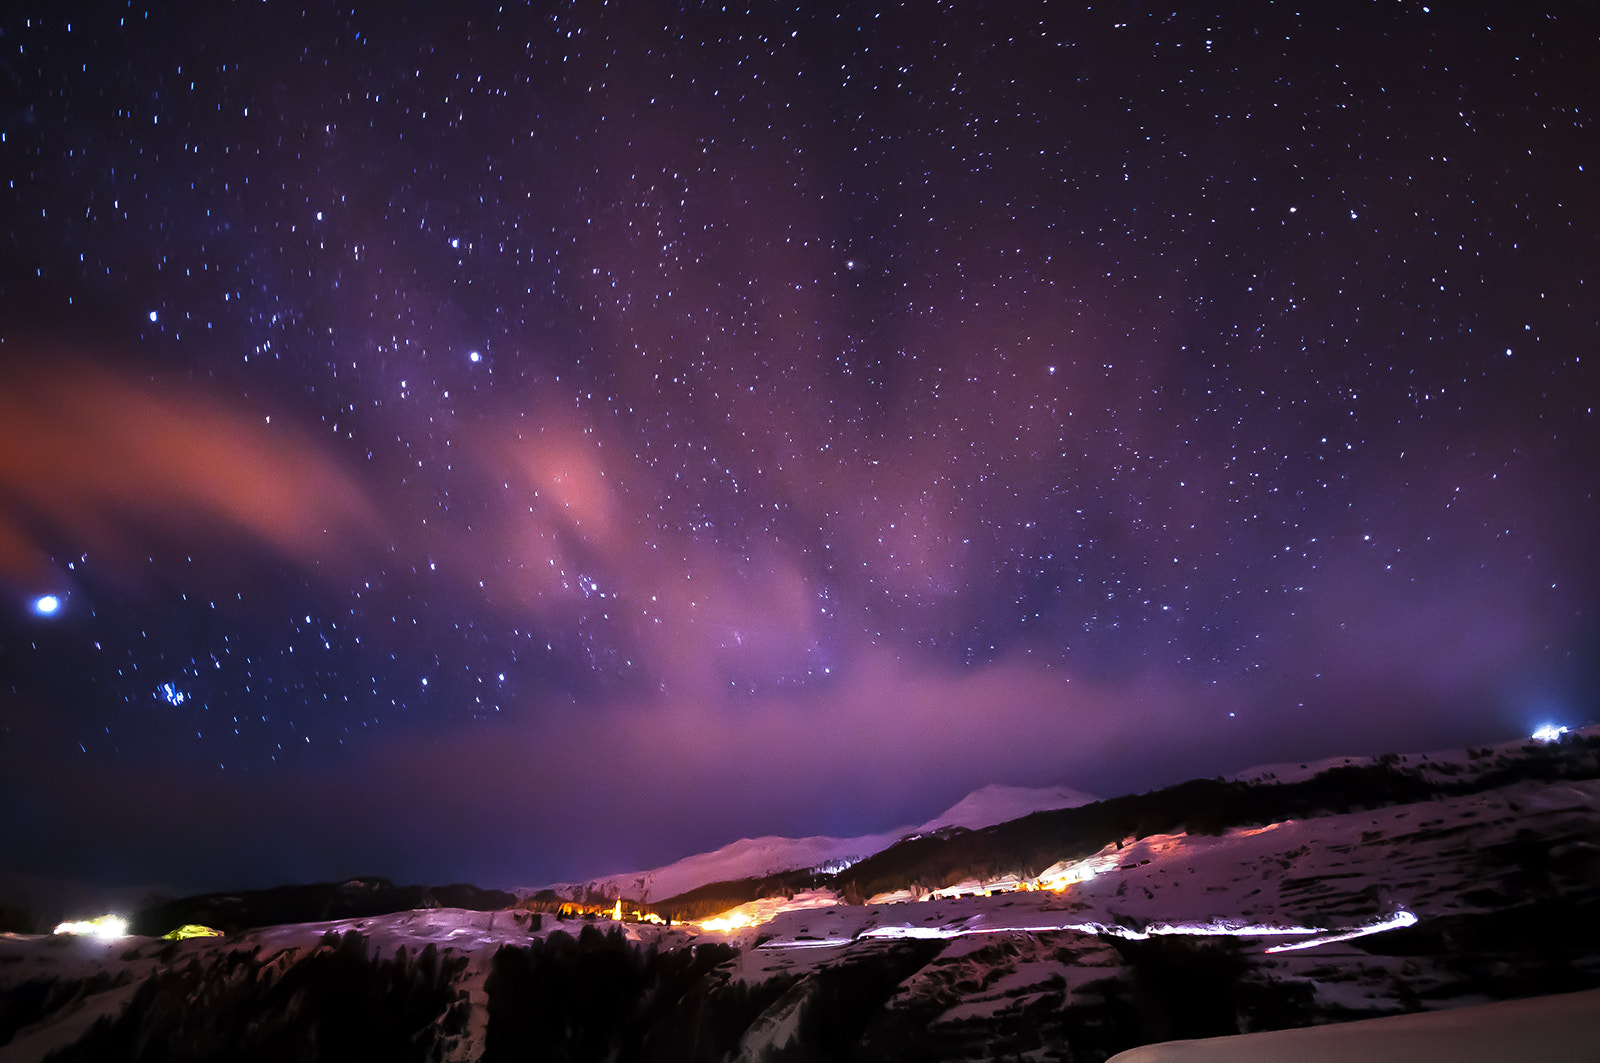 Photograph starlights behind the clouds by Armin Proschek on 500px